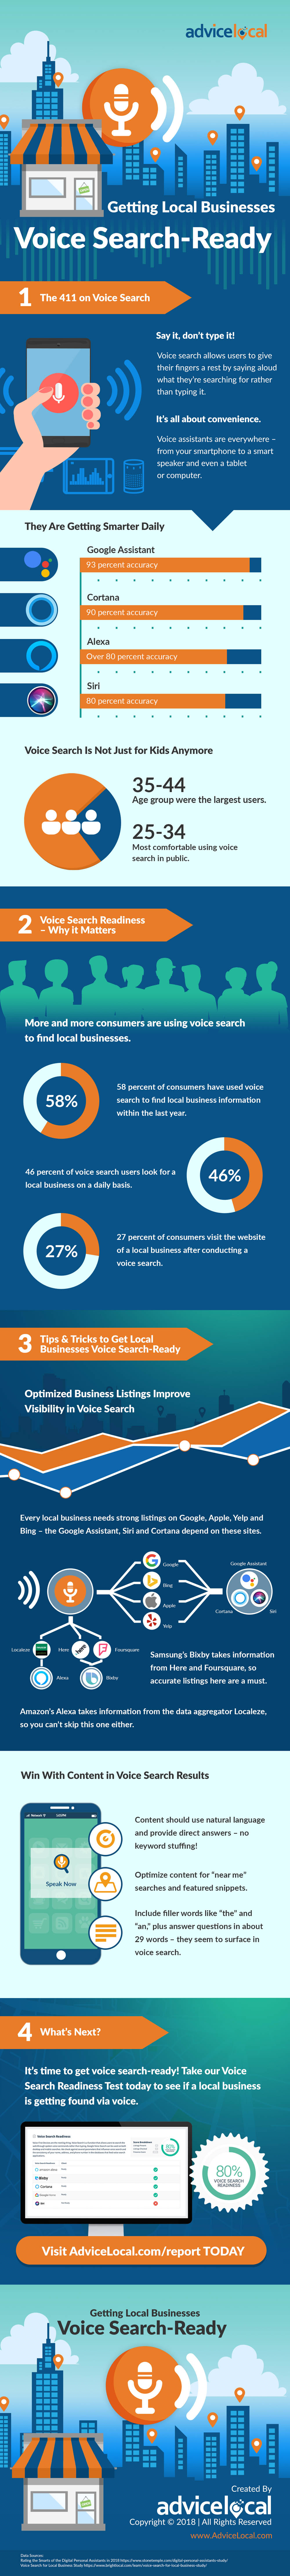 Getting Local Businesses Voice Search-Ready